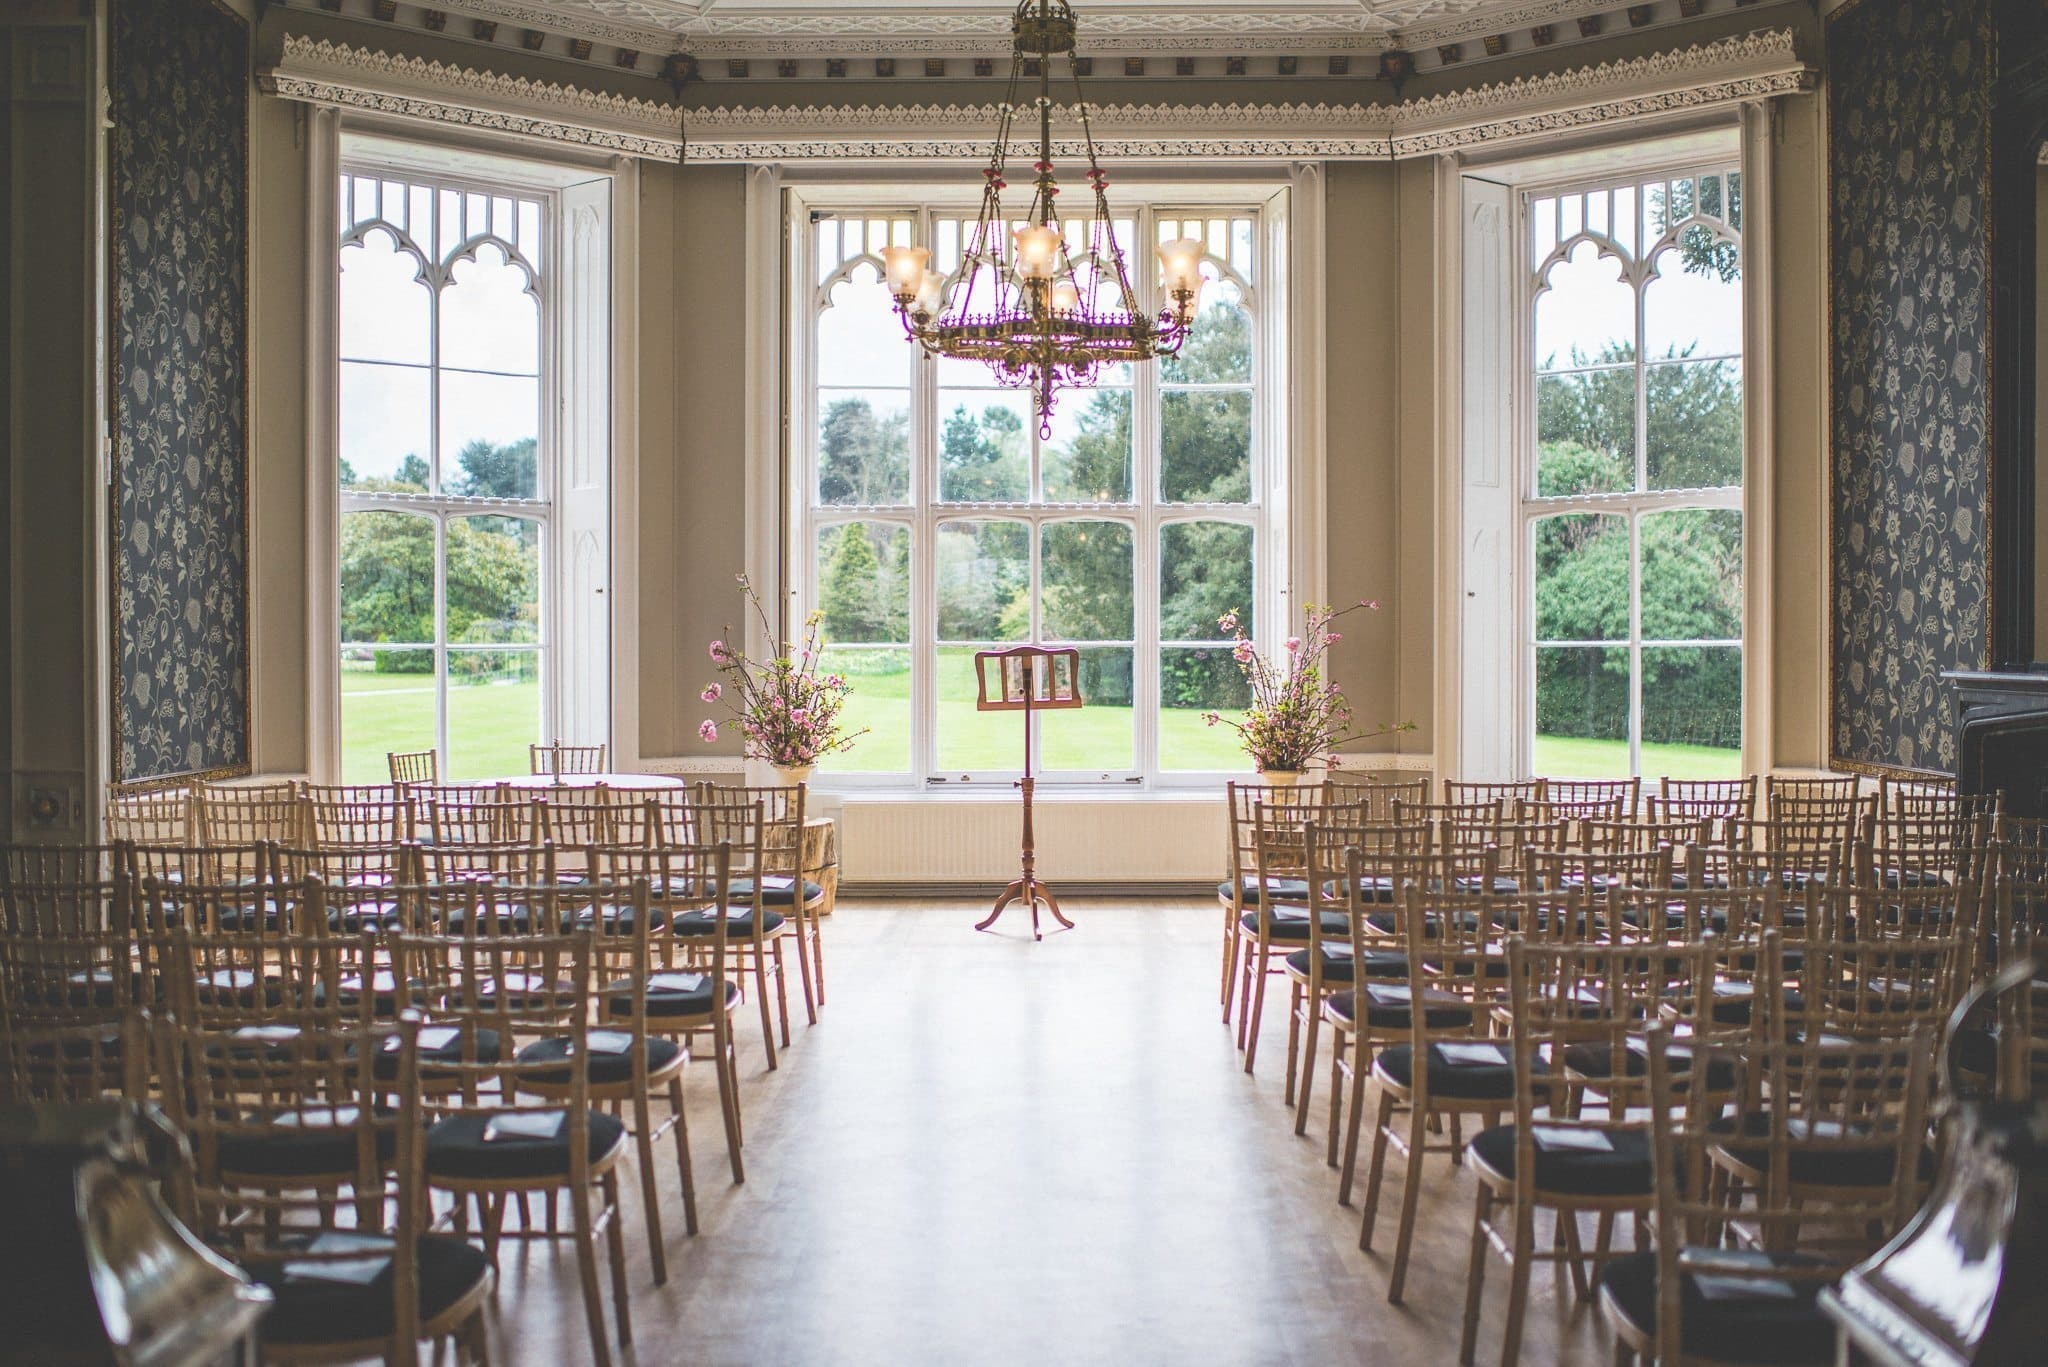 A view into the empty ceremony room at Nonsuch Mansion, with a large floor-to-ceiling bay window and chandelier with pink and gold details.